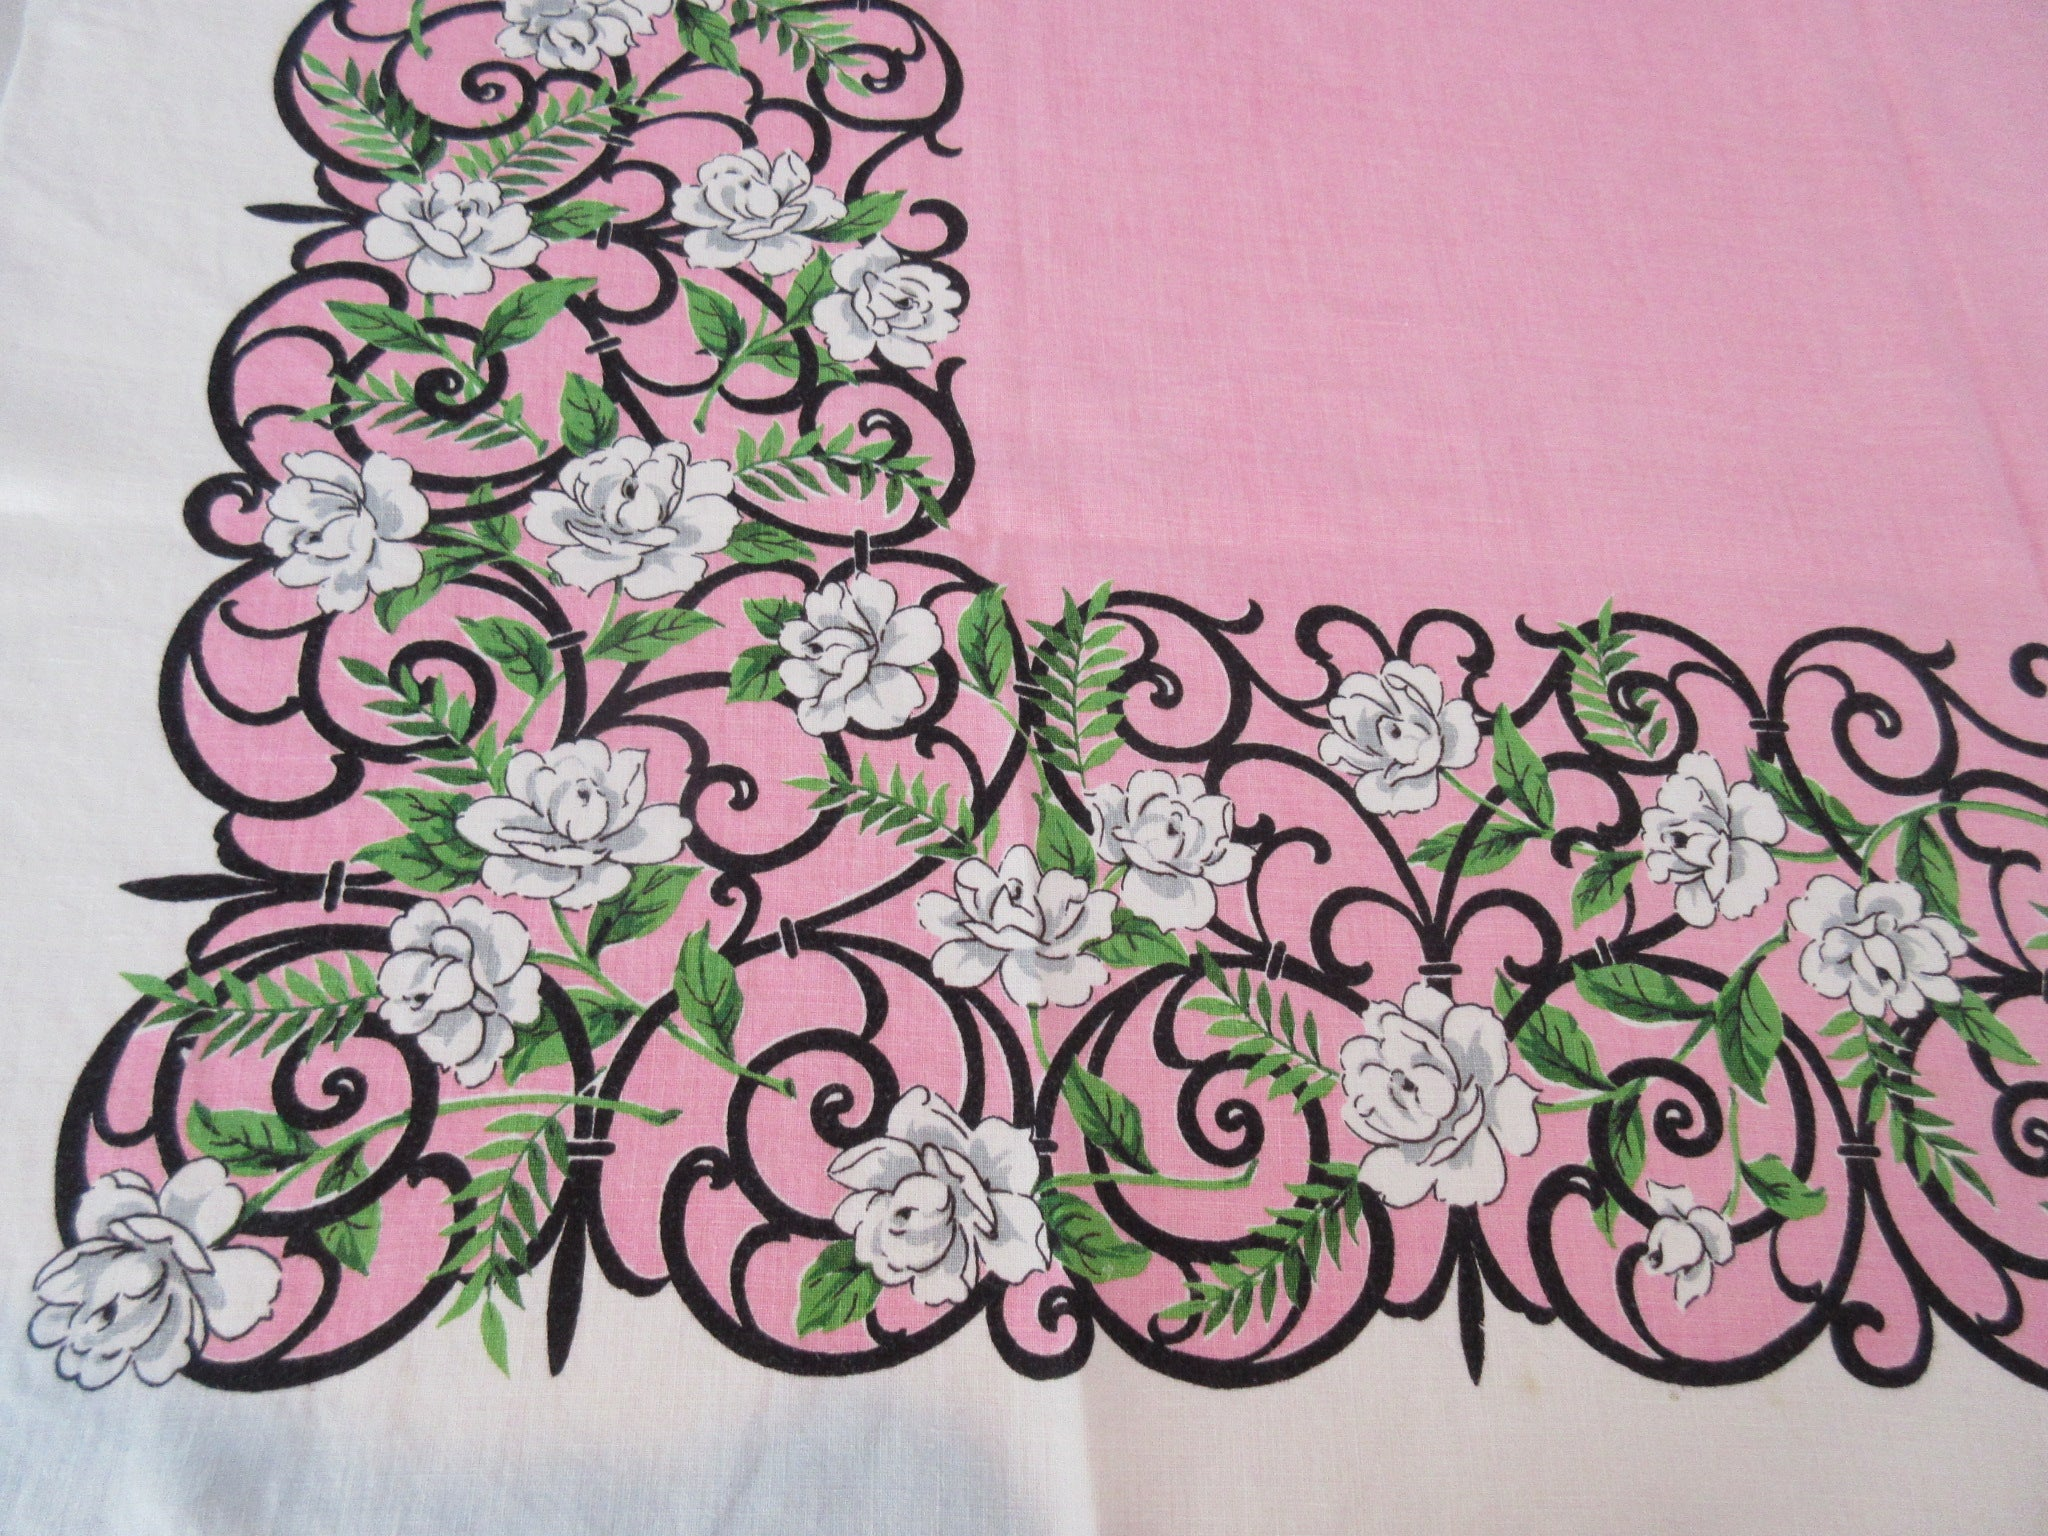 White Begonias Wrought Iron on Pink Linen Floral Vintage Printed Tablecloth (48 X 47)